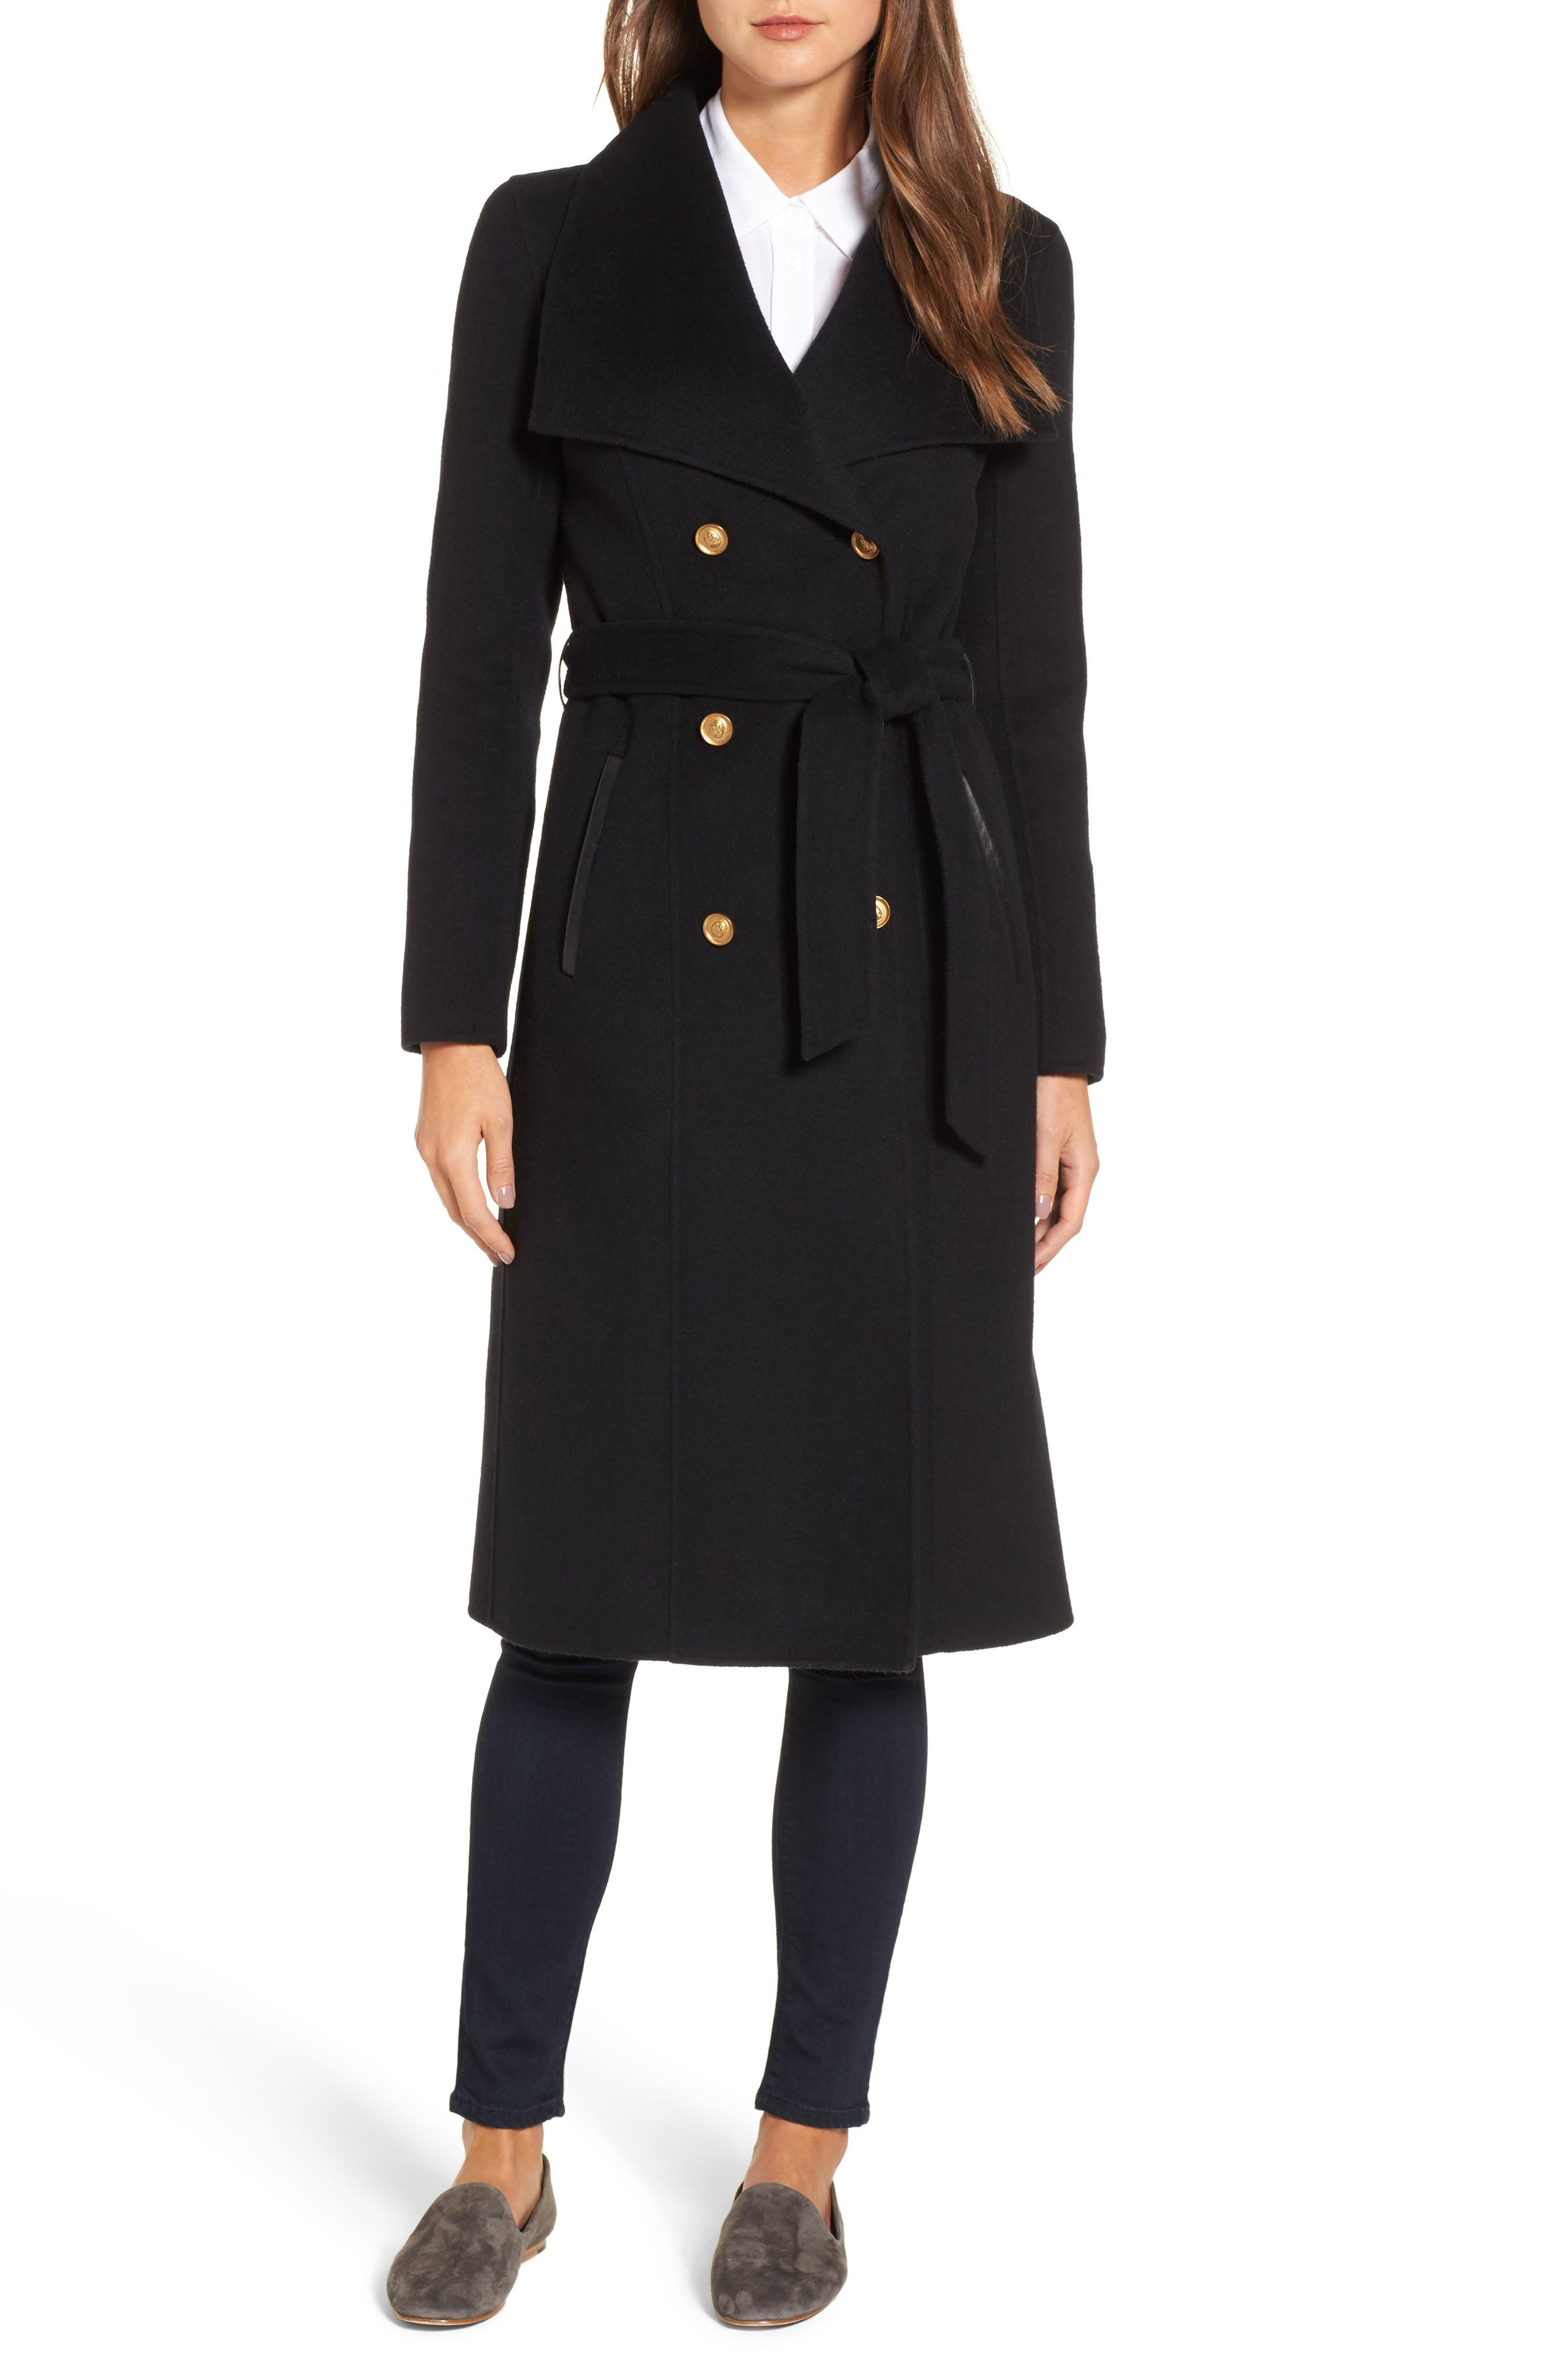 Norah-N Double Breasted Wool Blend Long Military Coat,                             Main thumbnail 1, color,                             001